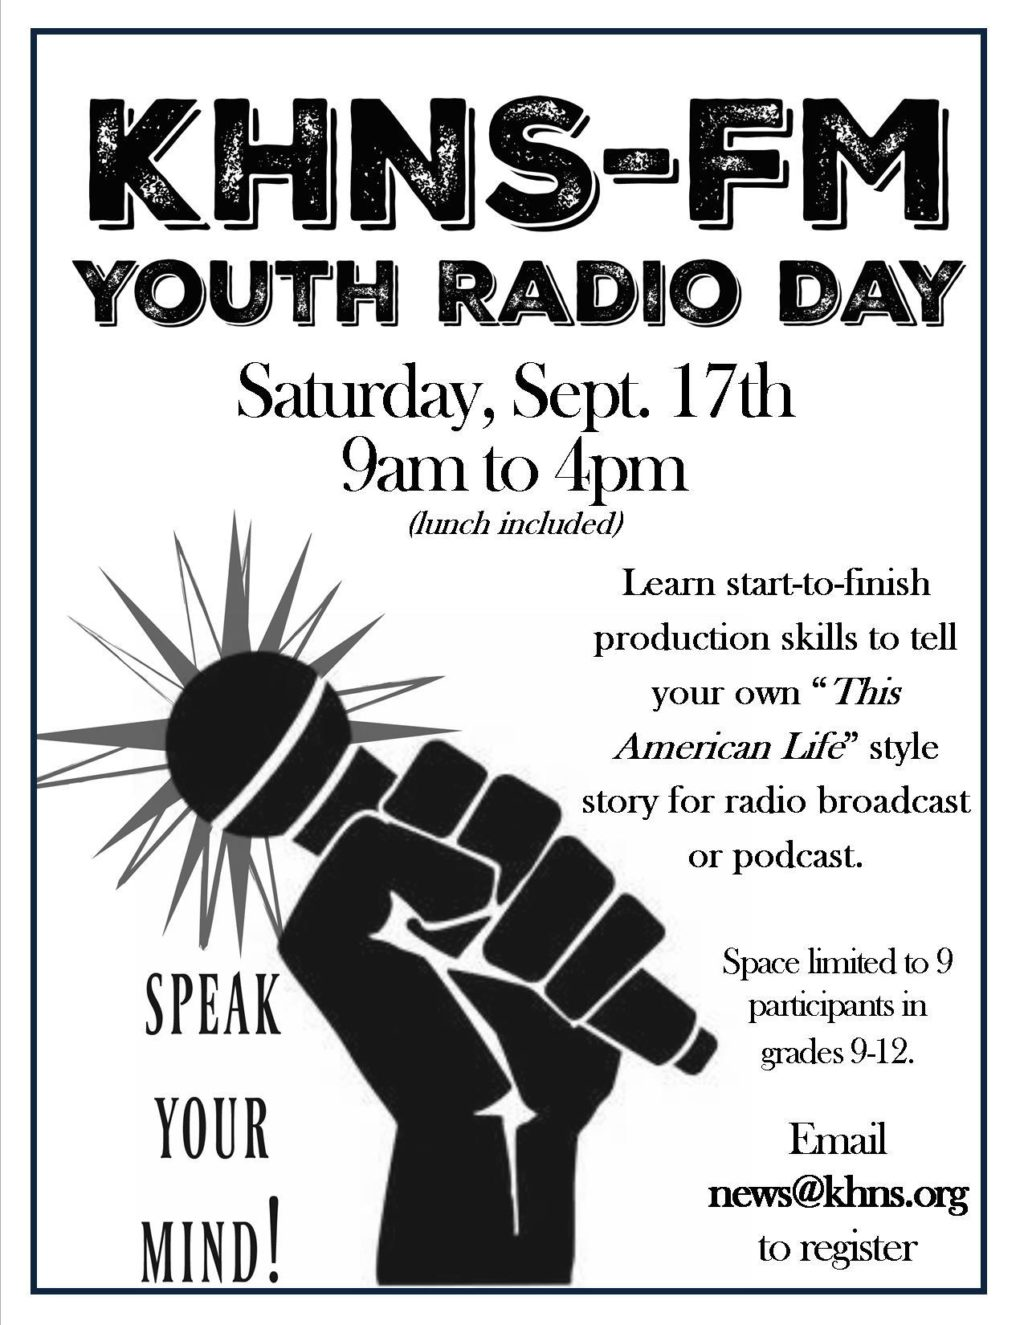 Join us for Youth Radio Day!